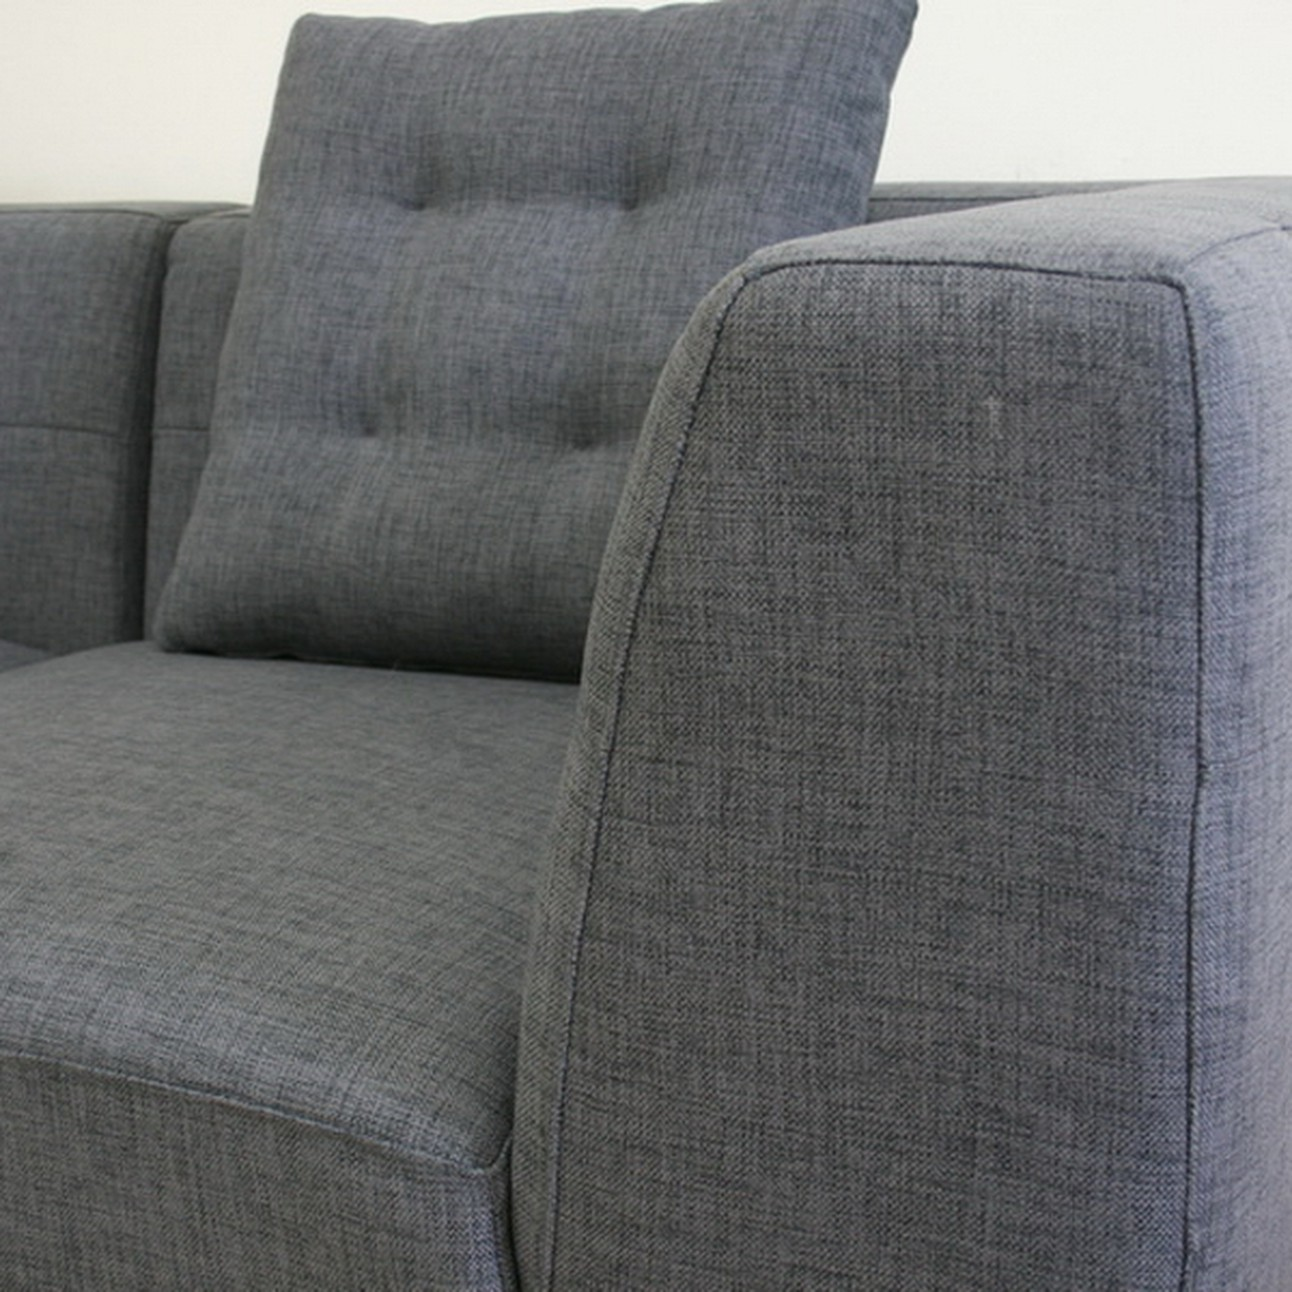 Surprising Alcoa Gray Fabric Modular Modern Sectional Sofa Caraccident5 Cool Chair Designs And Ideas Caraccident5Info